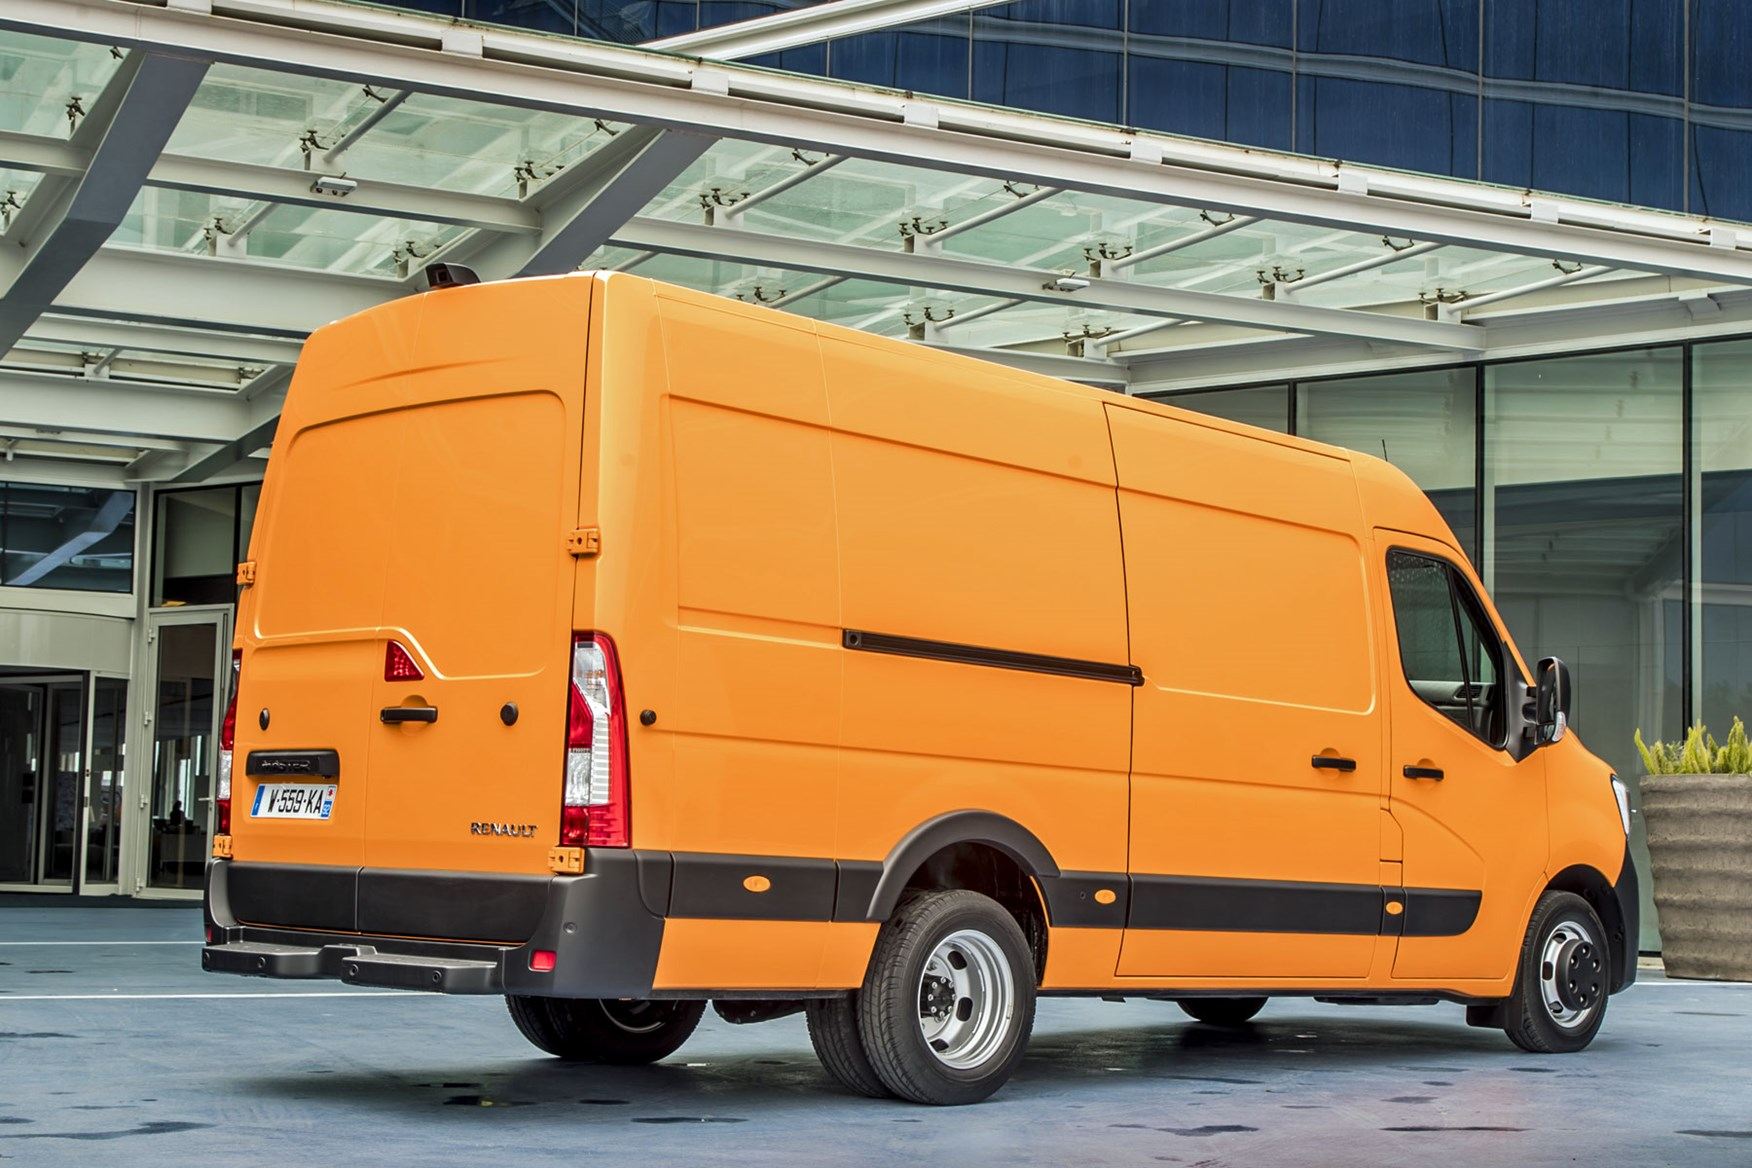 Renault Master review - 2019 facelift, rear view, orange